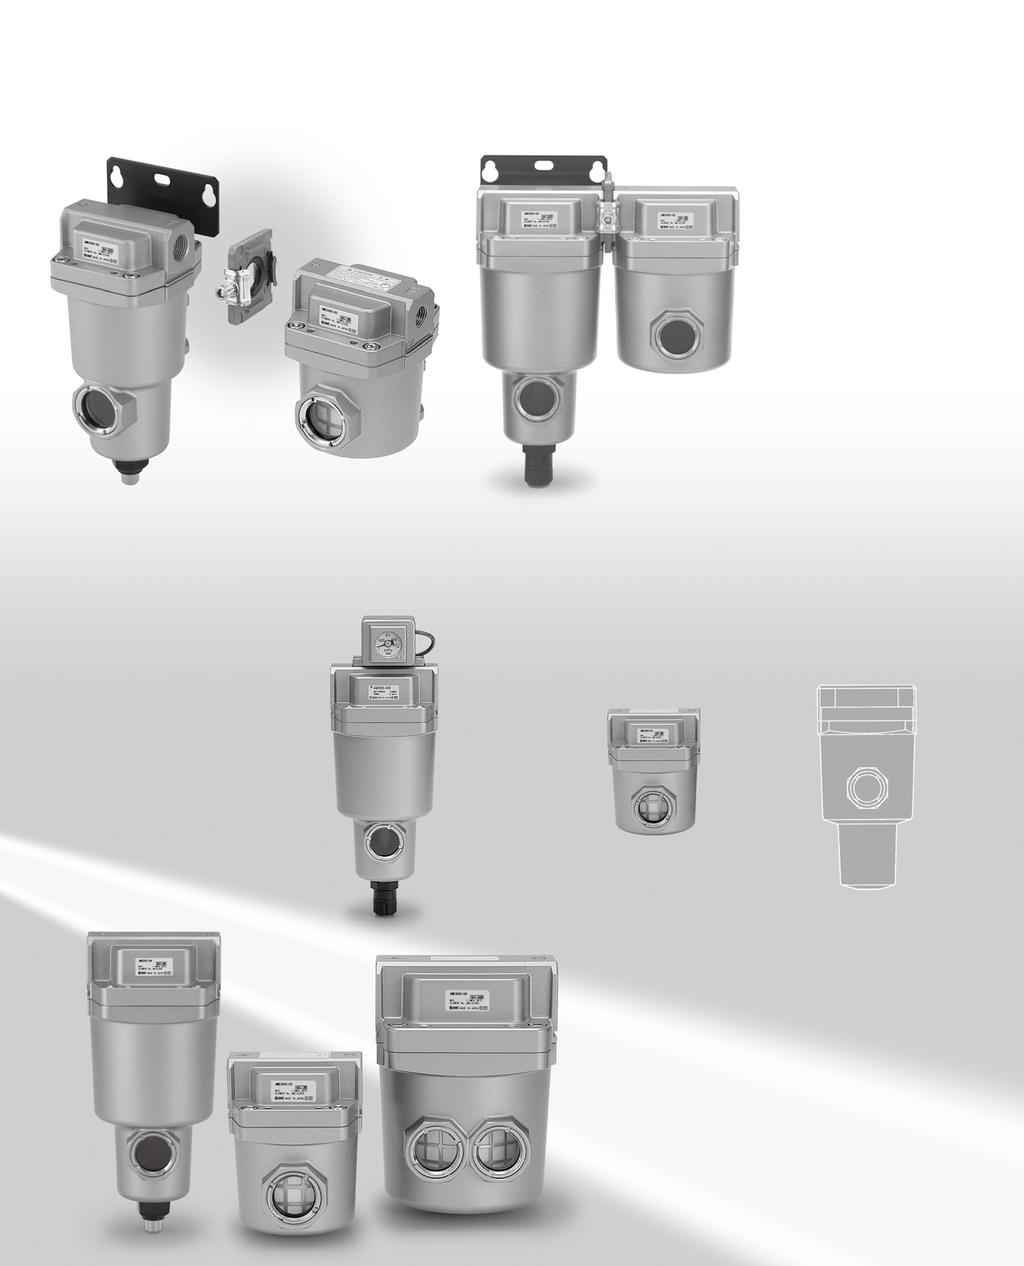 Compressed ir Cleaning Filter Series M /FF Series For Water Droplet, Solid/Oil Separation and Deodorization Modular connection, Space-saving design, Labor-saving in piping!